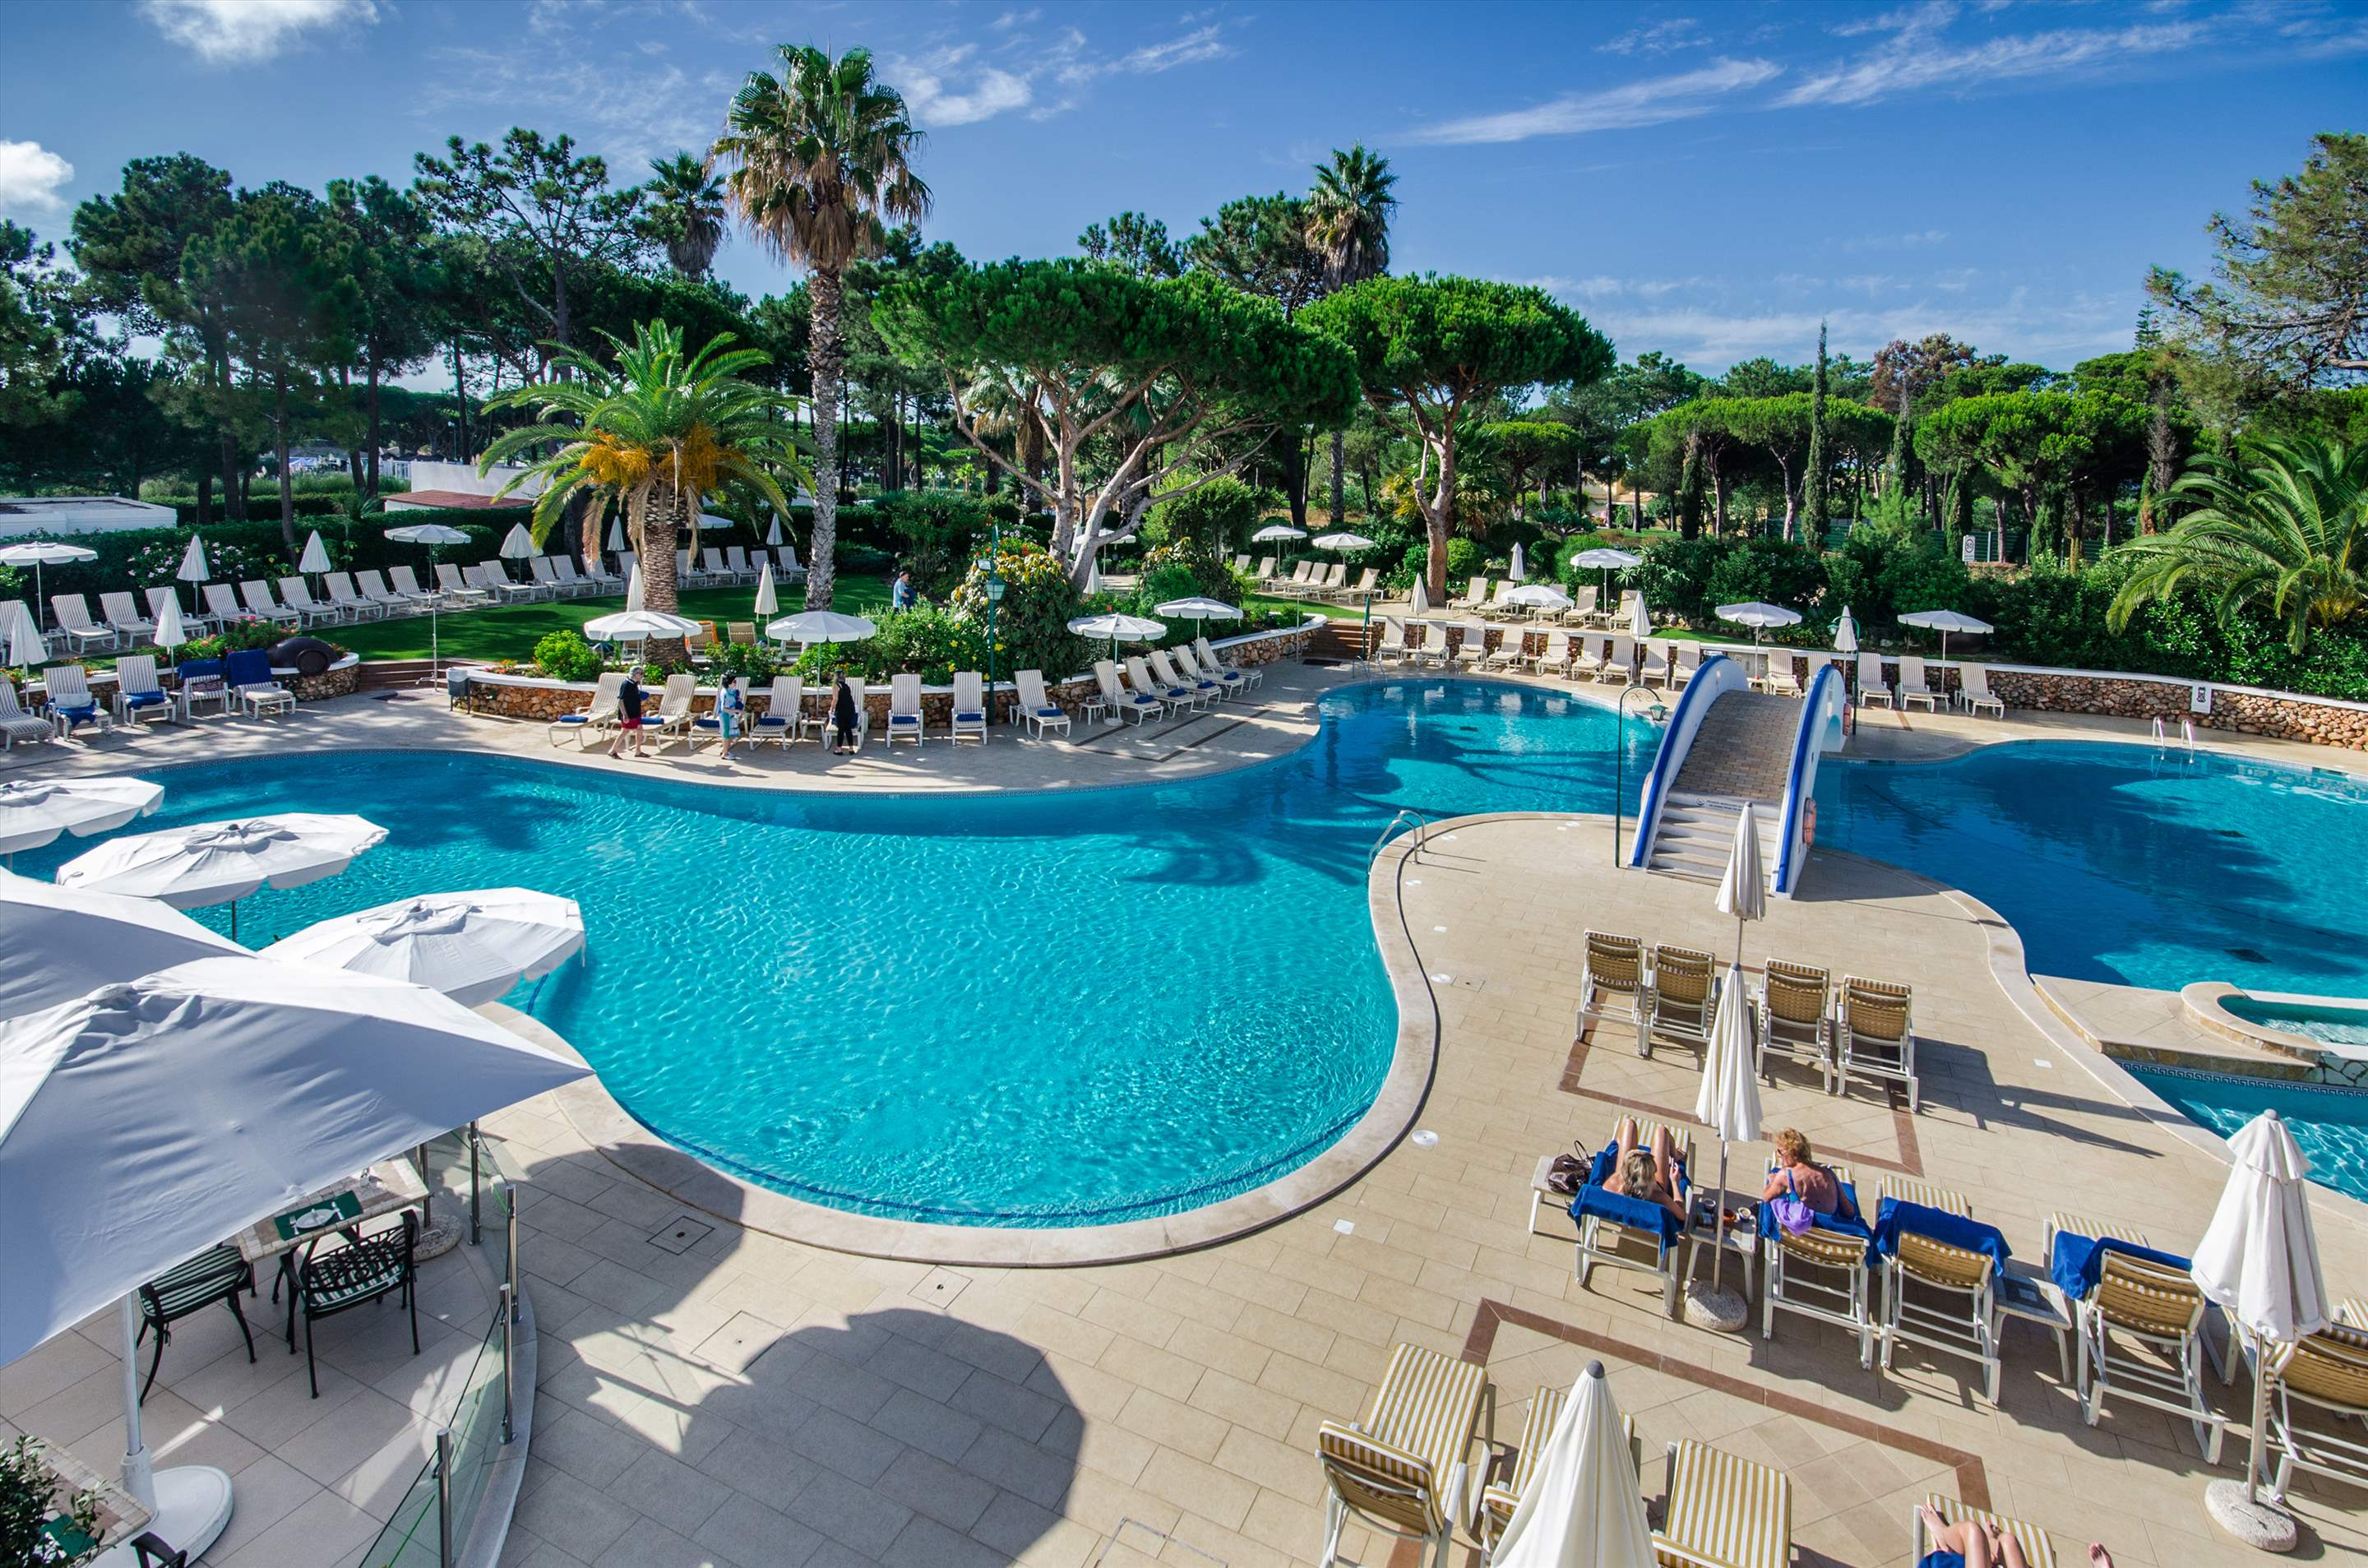 Four Seasons Country Club 2 Bed Townhouse, Superior - Thursday Arrival, 2 bedroom apartment in Four Seasons Country Club, Algarve Photo #17